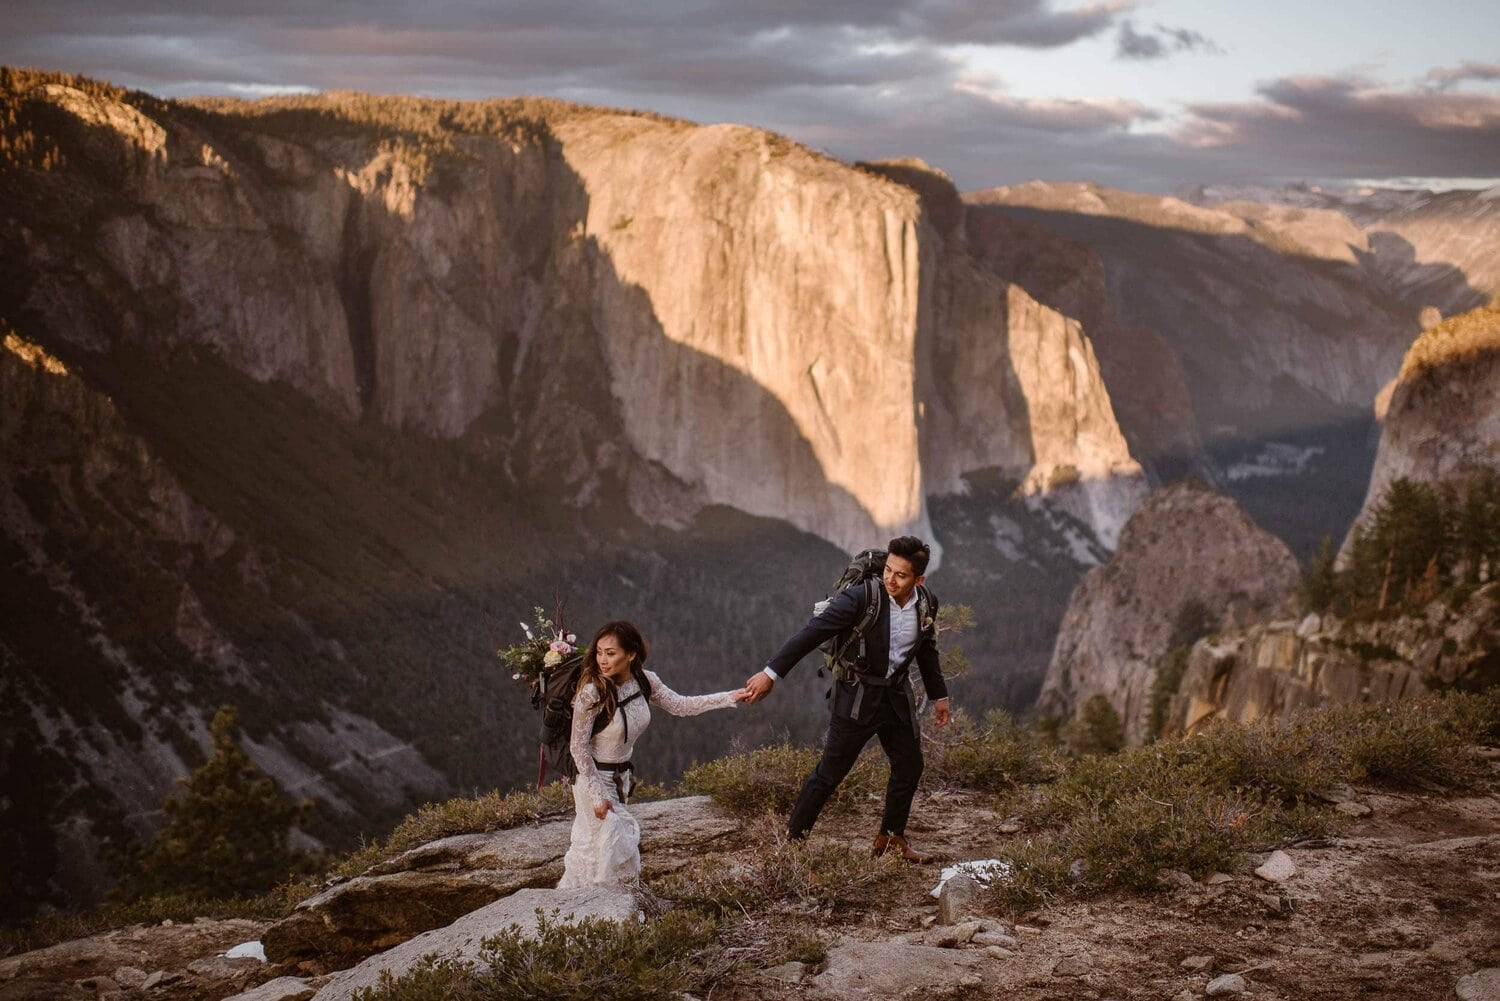 Bride and groom walk hand in hand while walking in Yosemite National Park.